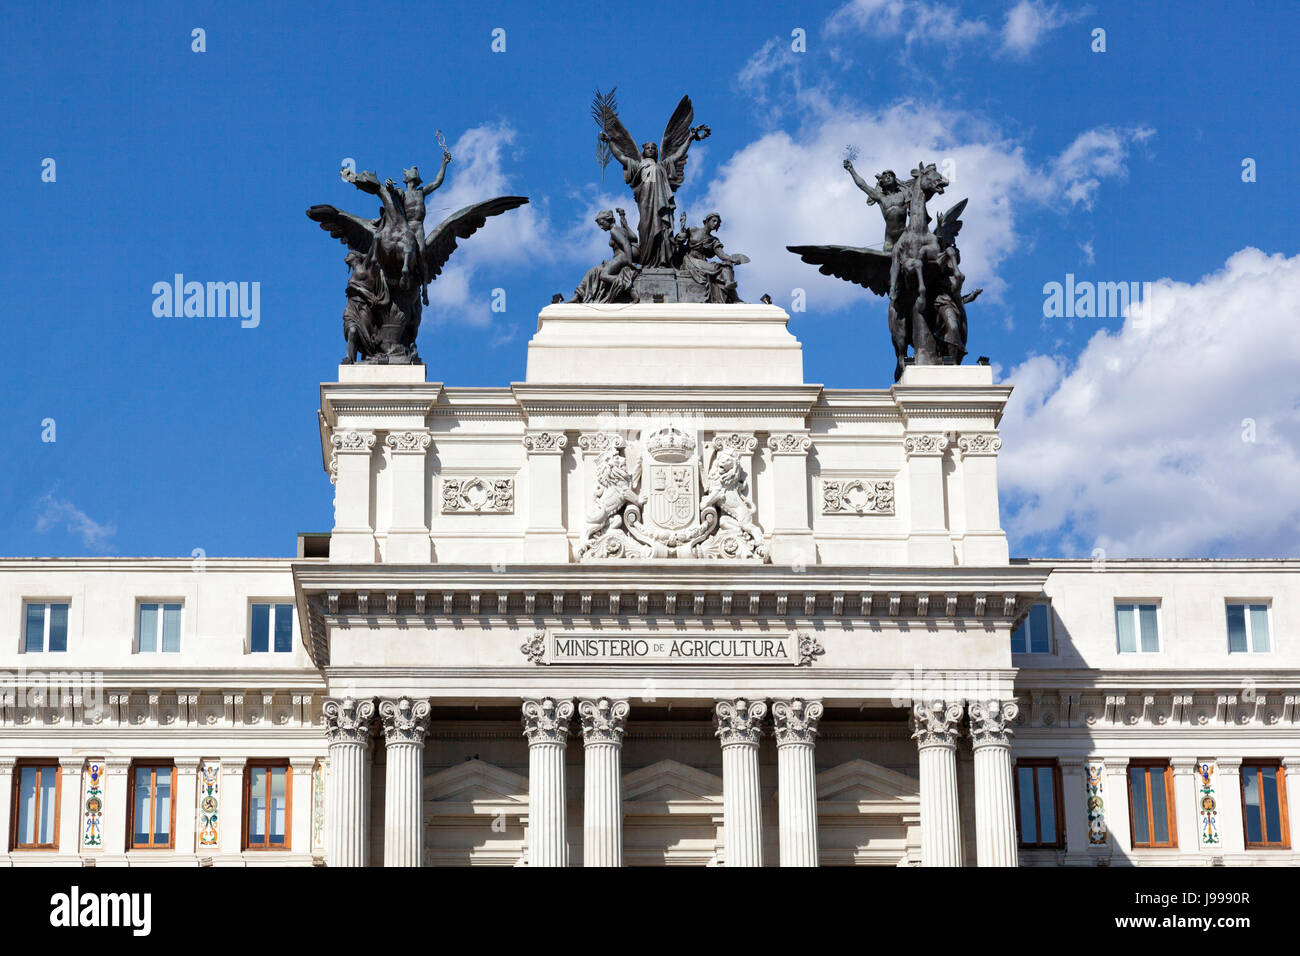 Detail of the Ministry of agriculture in Madrid - Stock Image